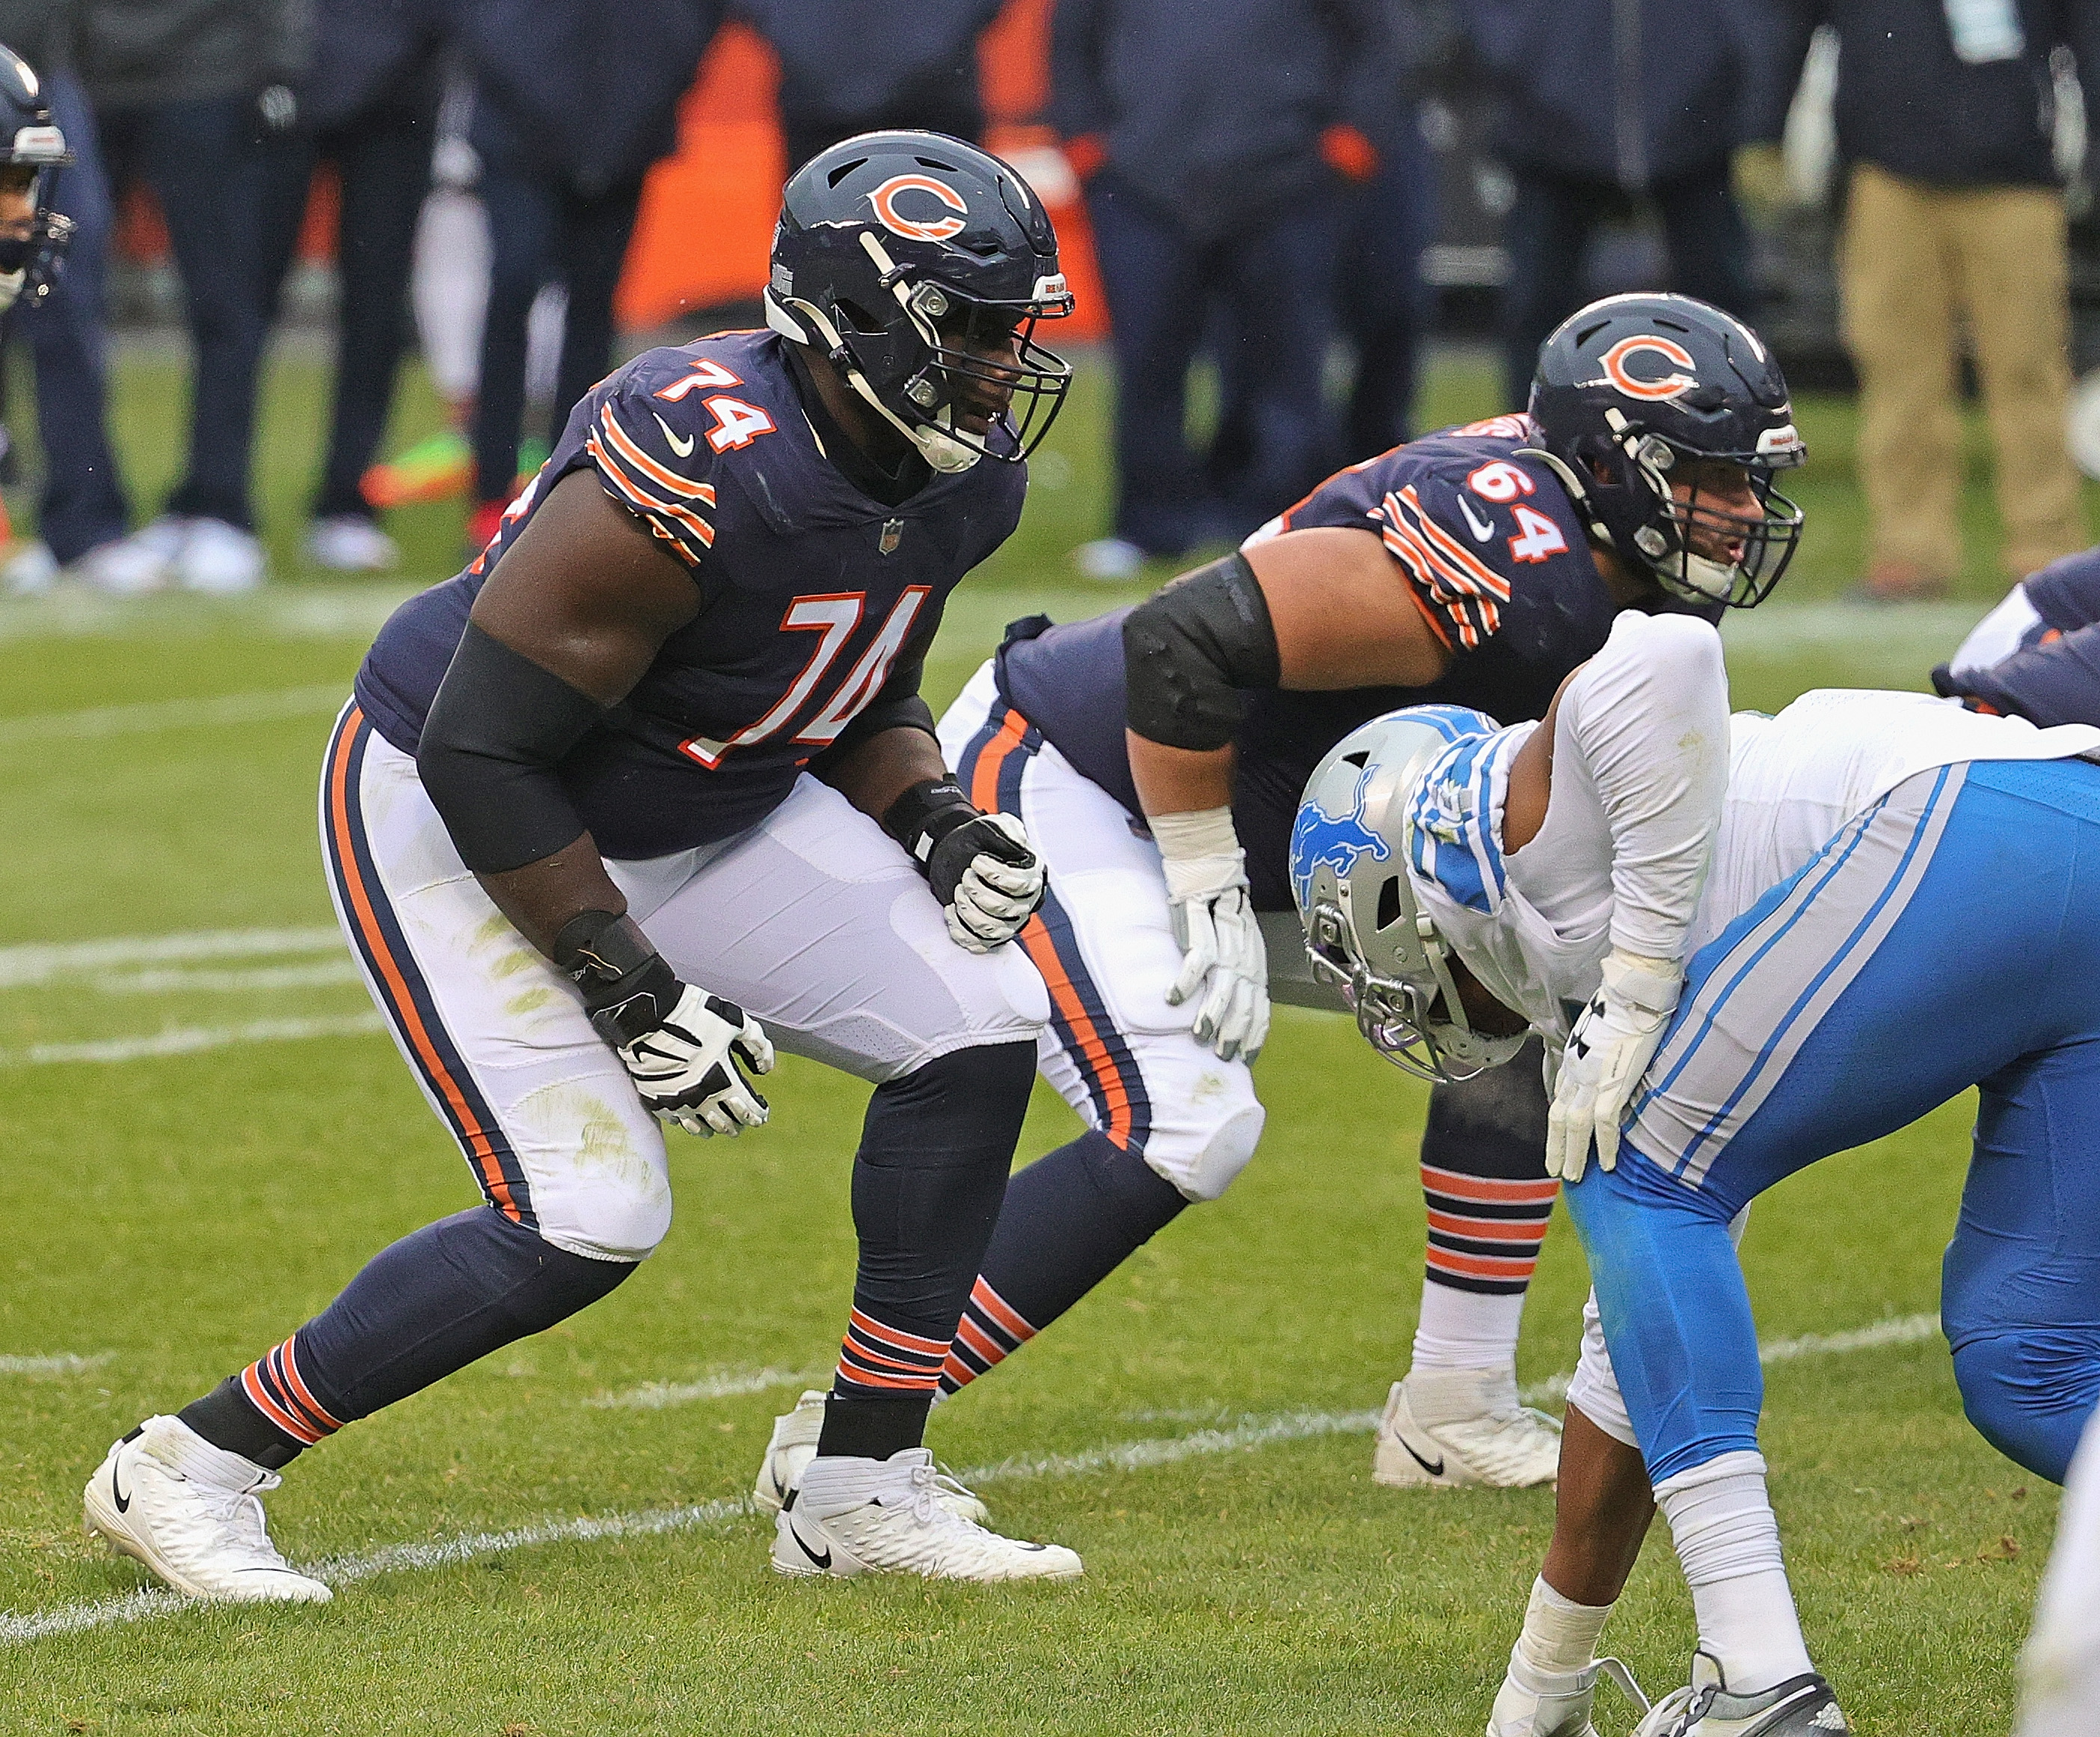 Germain Ifedi (74) started all 17 games for the Bears last season —10 at right guard and seven (including the postseason) at right tackle.